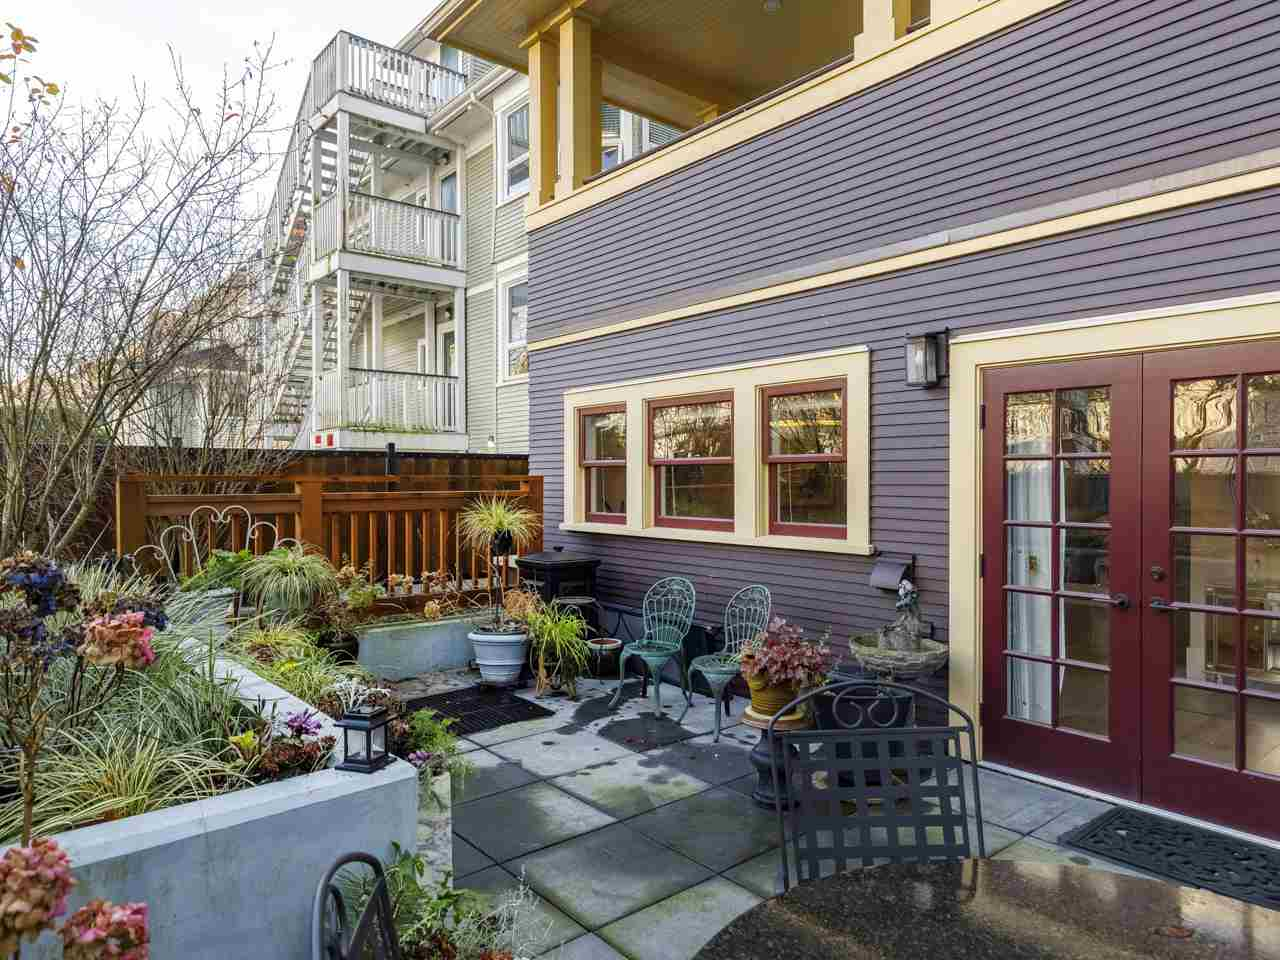 3 465 W 13TH AVENUE - Mount Pleasant VW Townhouse for sale, 3 Bedrooms (R2526442) - #14